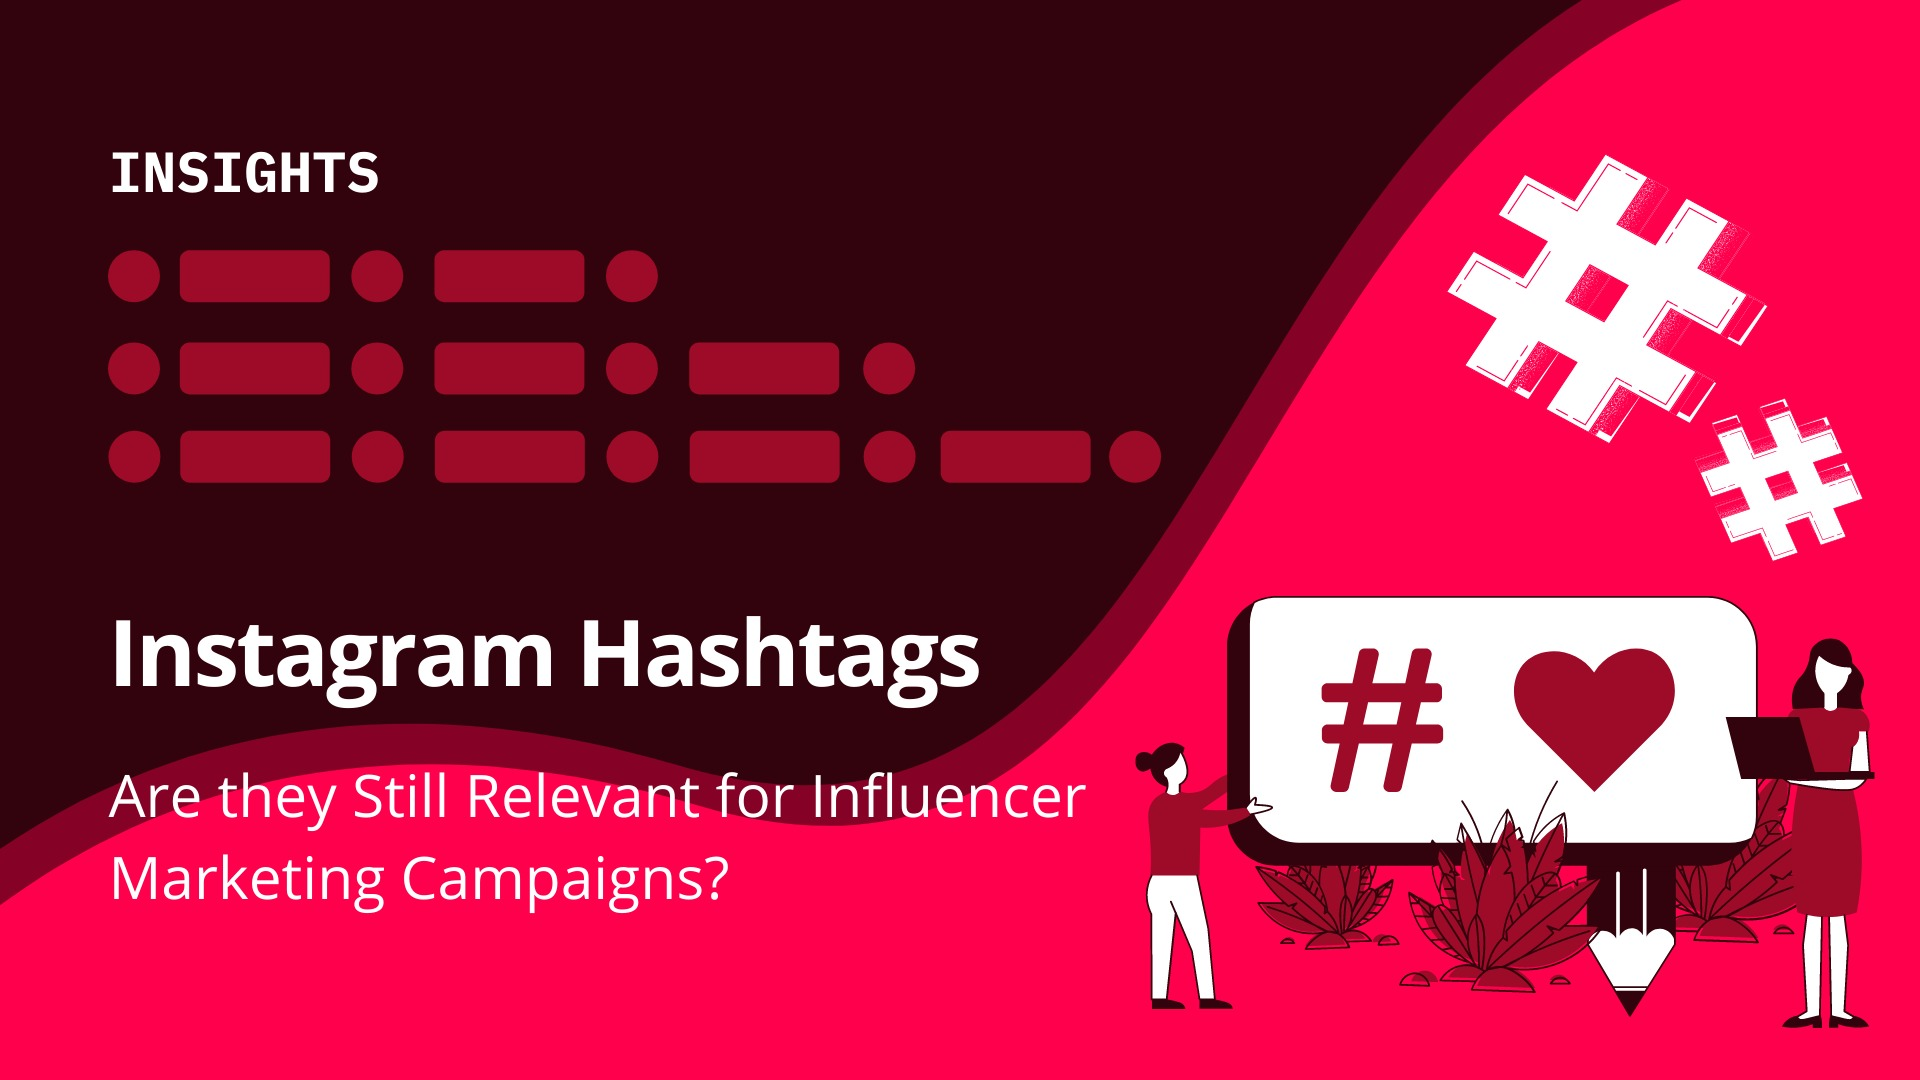 Instagram Hashtags: Are they still relevant for Influencer Marketing Campaigns? - blog by Winkl (An influencer marketing platform)